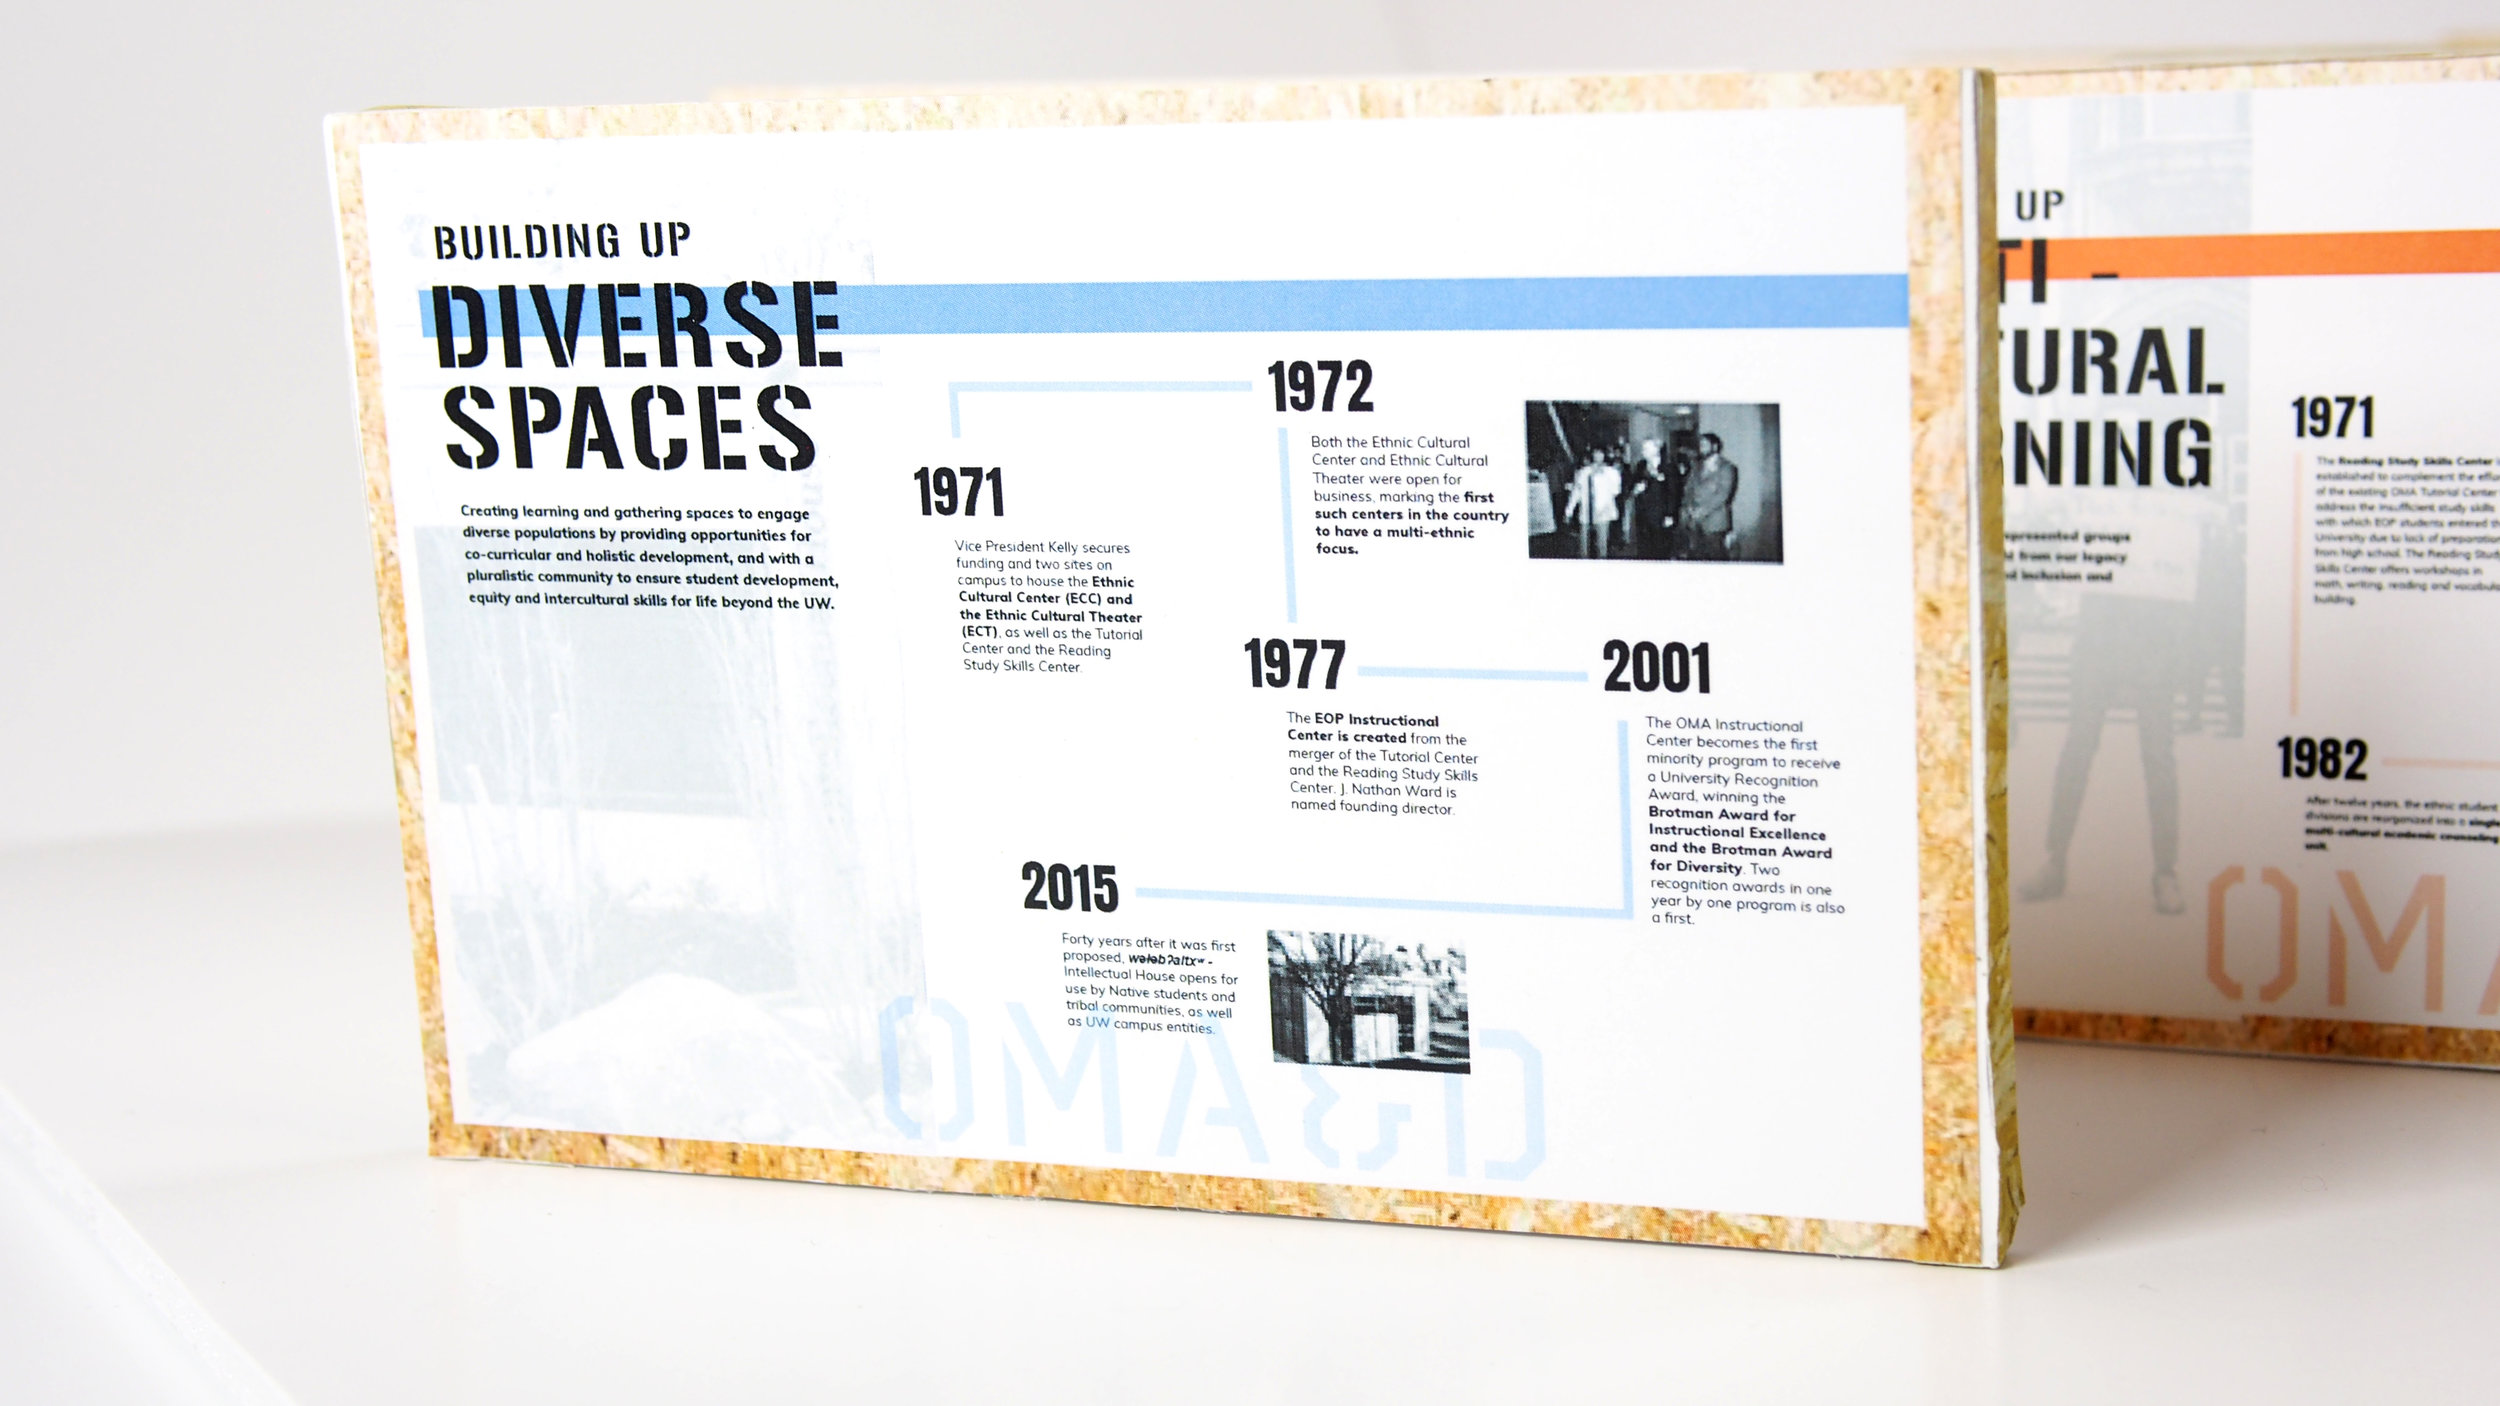 Building Up: Diverse Spaces. Creating learning and gathering spaces to engage diverse populations by providing opportunities for co-curricular and holistic development, and with a pluralistic community to ensure student development, equity, and intercultural skills for life beyond the UW.